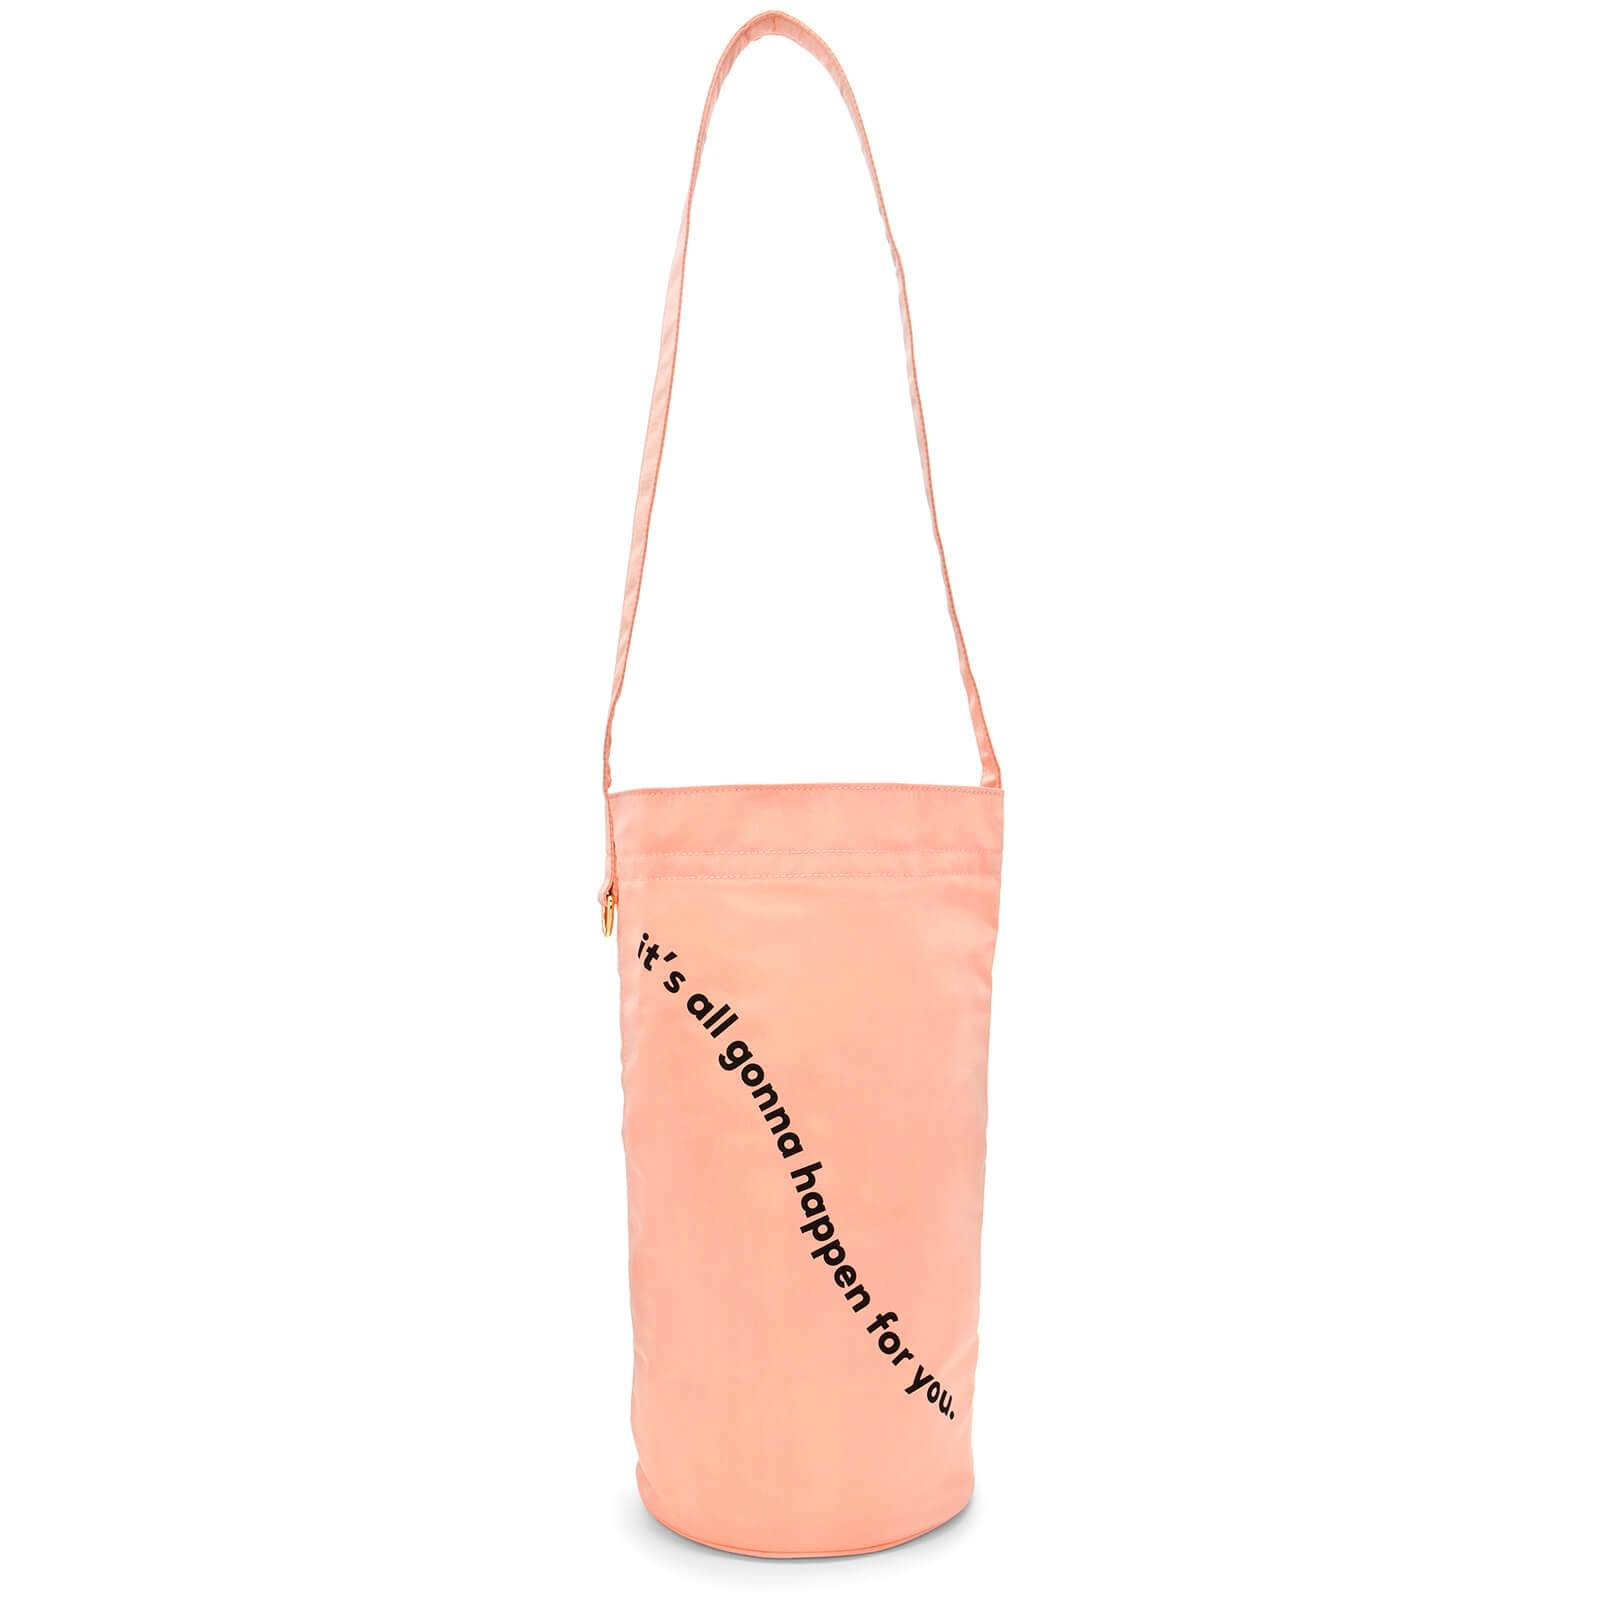 Ban.do Work It Out Exercise Mat Bag - Compliments (All Gonna Happen For You)